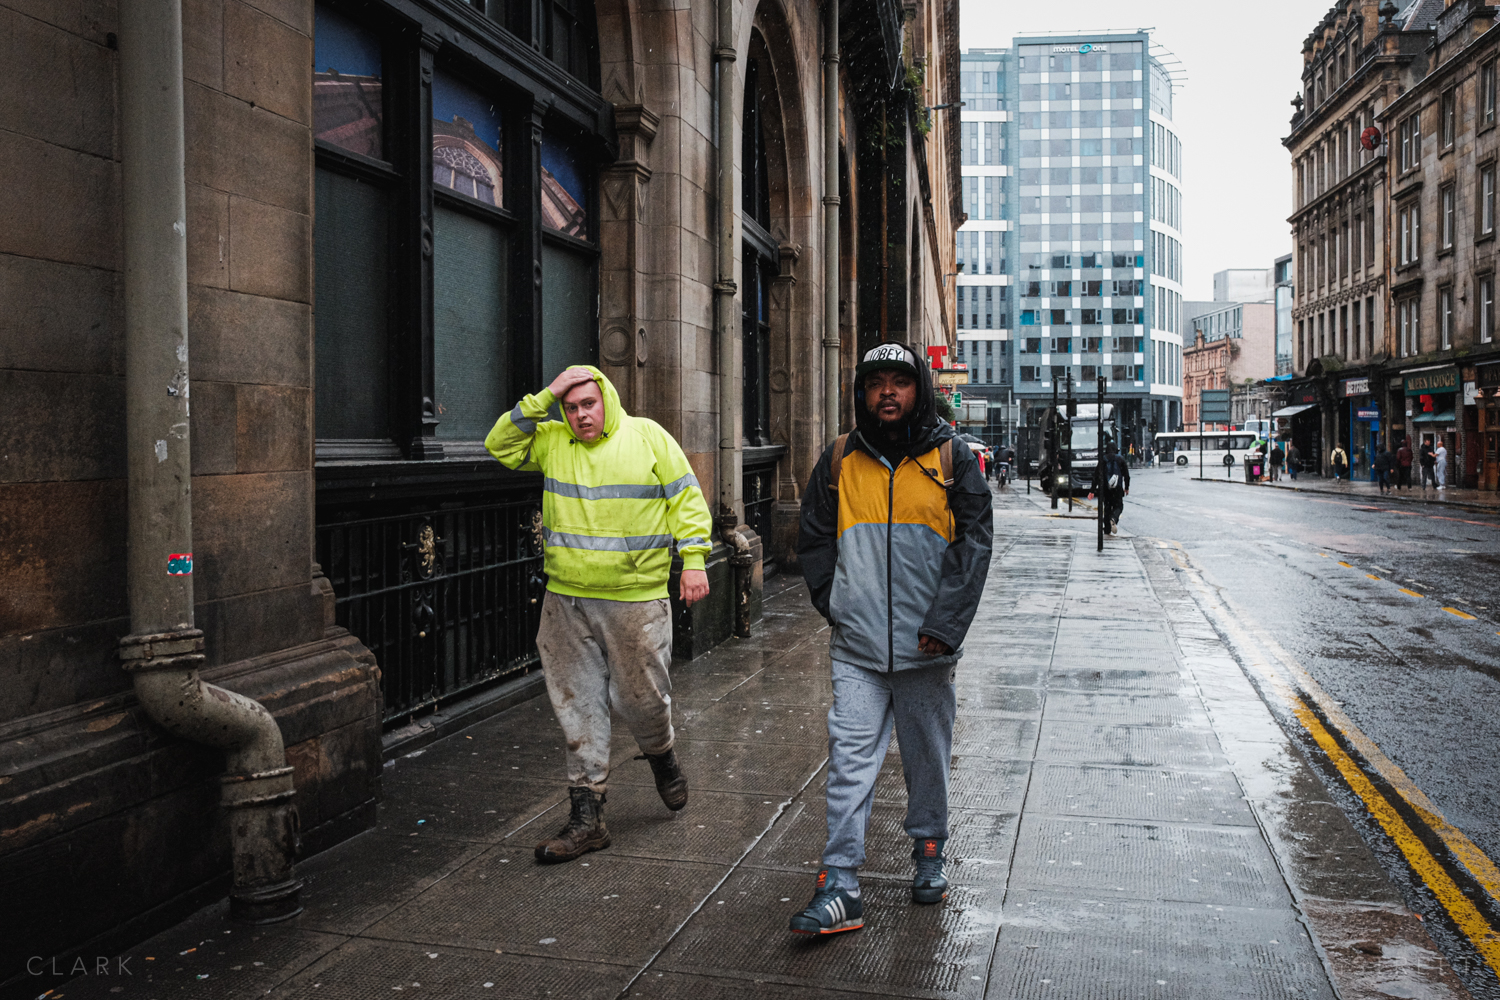 011_35mmStreet-Rainy-Friday-Glasgow.jpg